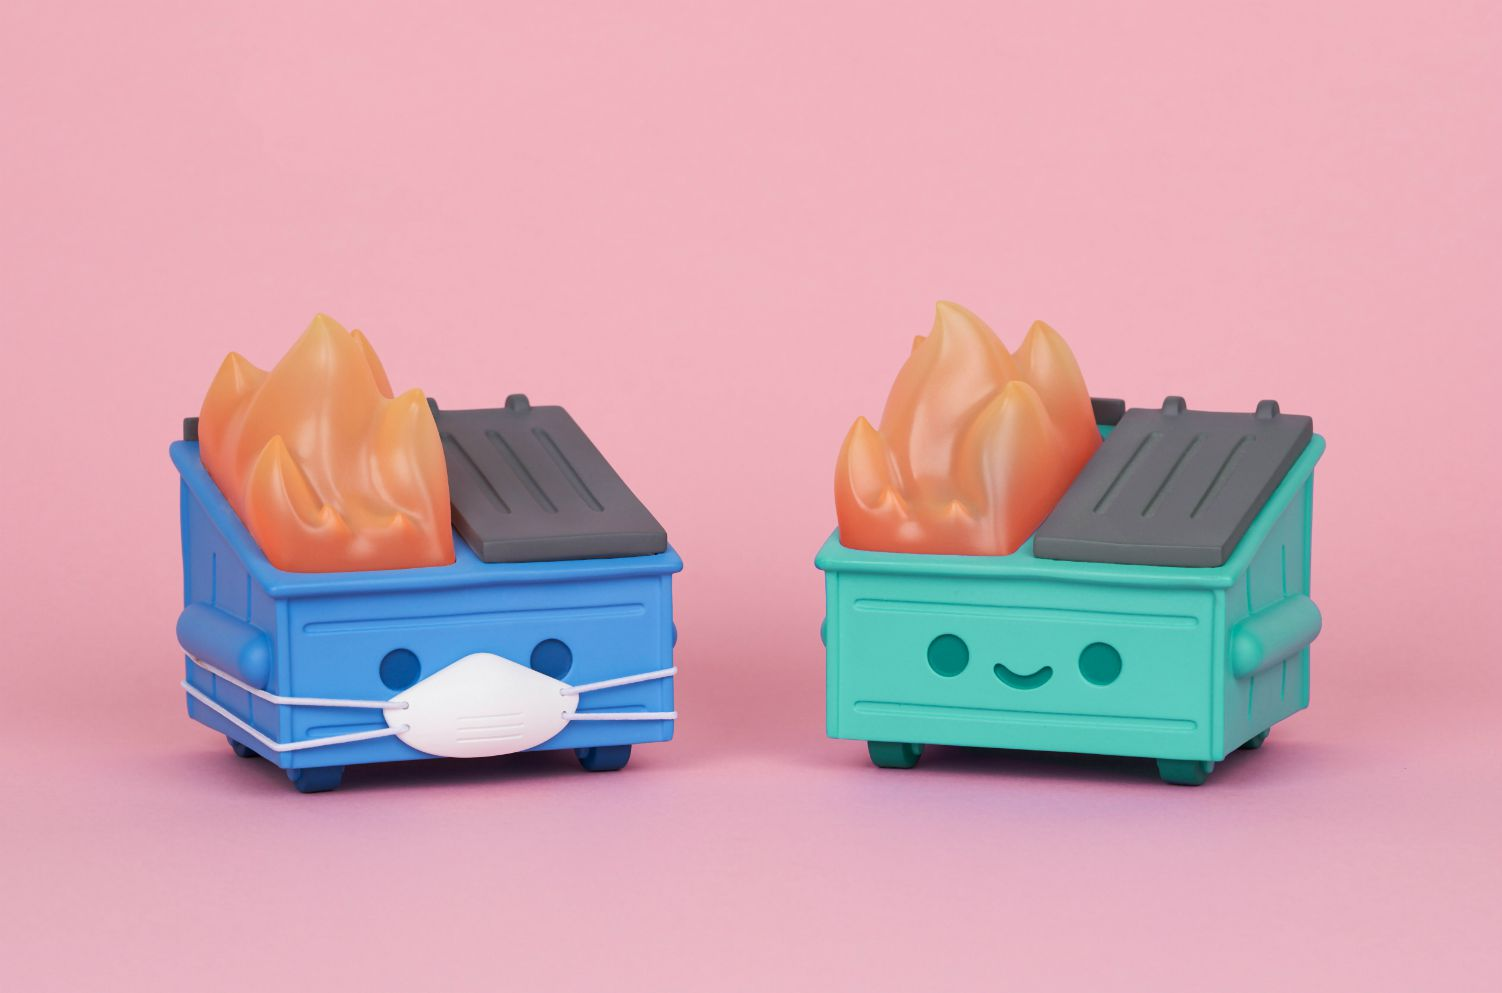 dumpster fire toy